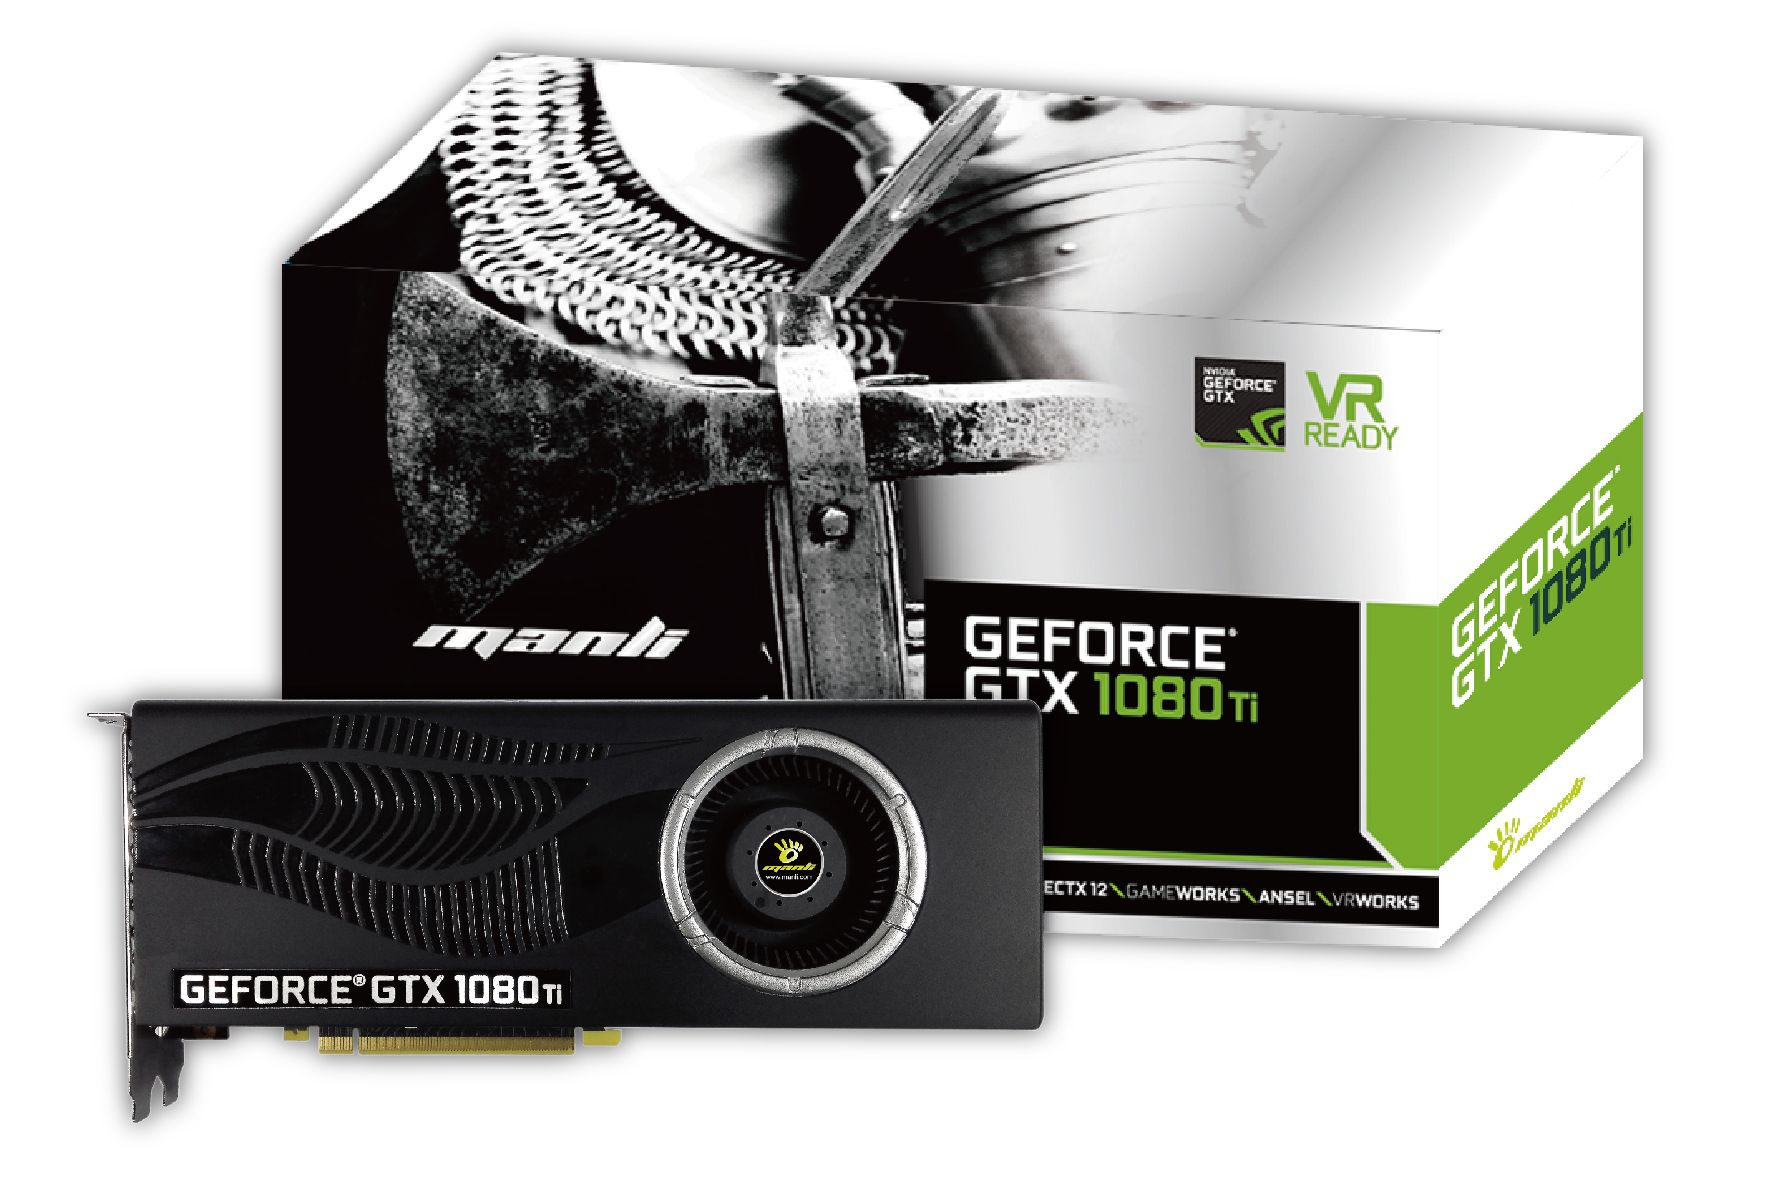 Manli Geforce Gtx 1080 Ti With Blower Fan Graphic Card Blower Fans Graphic